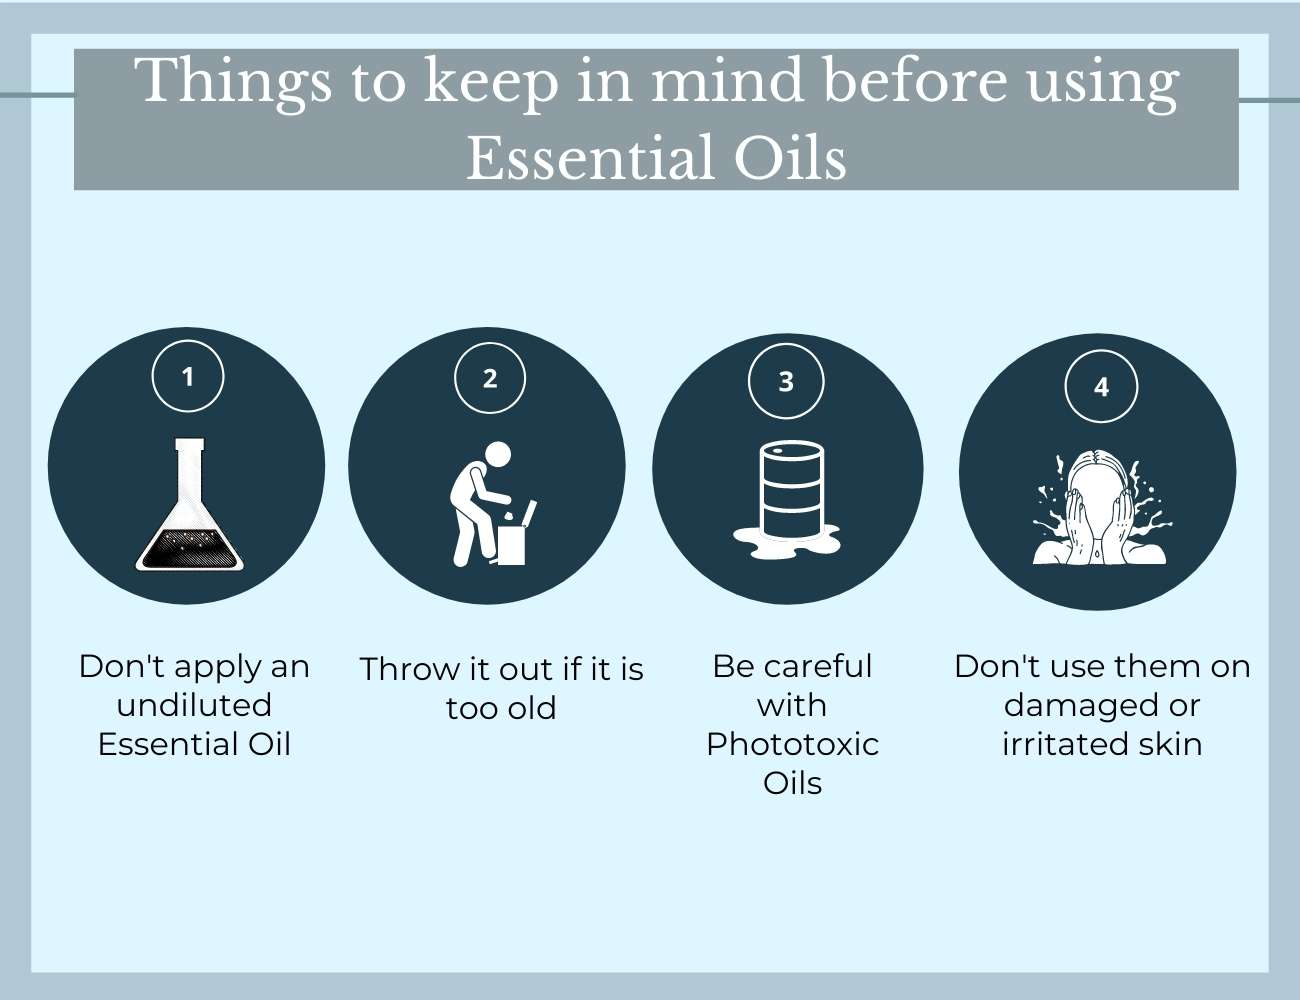 This is an image showing what to keep in mind before using Essential Oils.